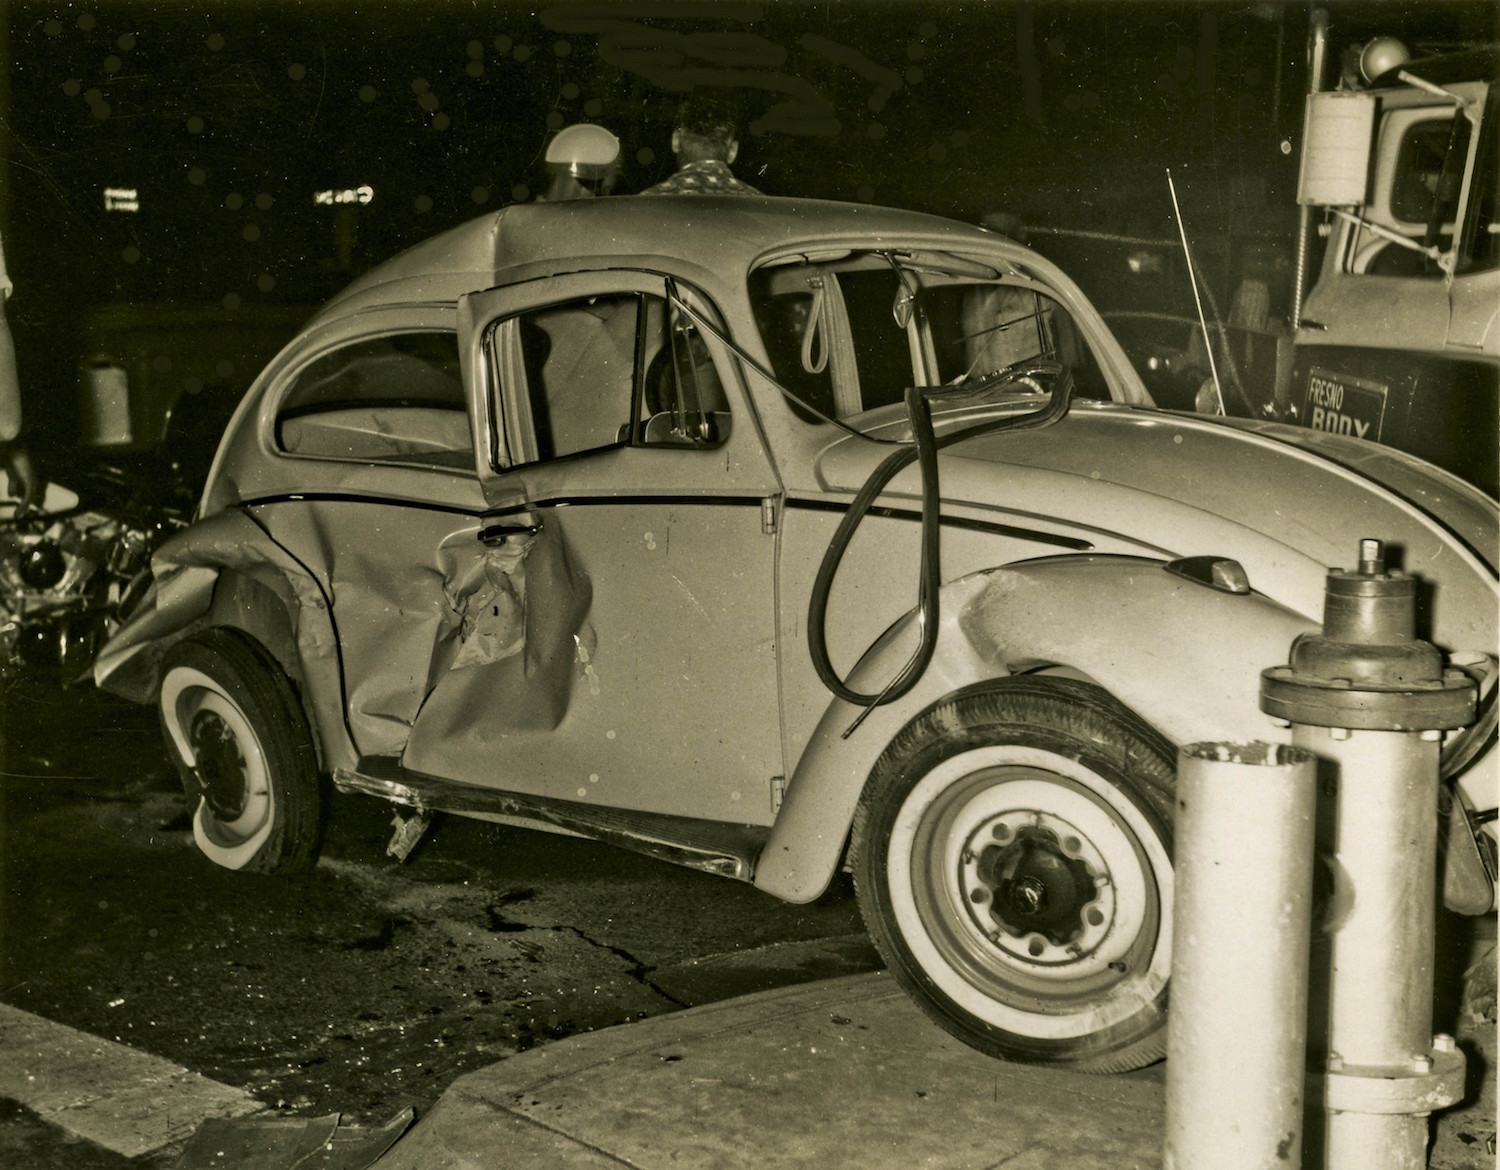 Old Auto Accidents in Fresno (1960 - 1966) - Flashbak